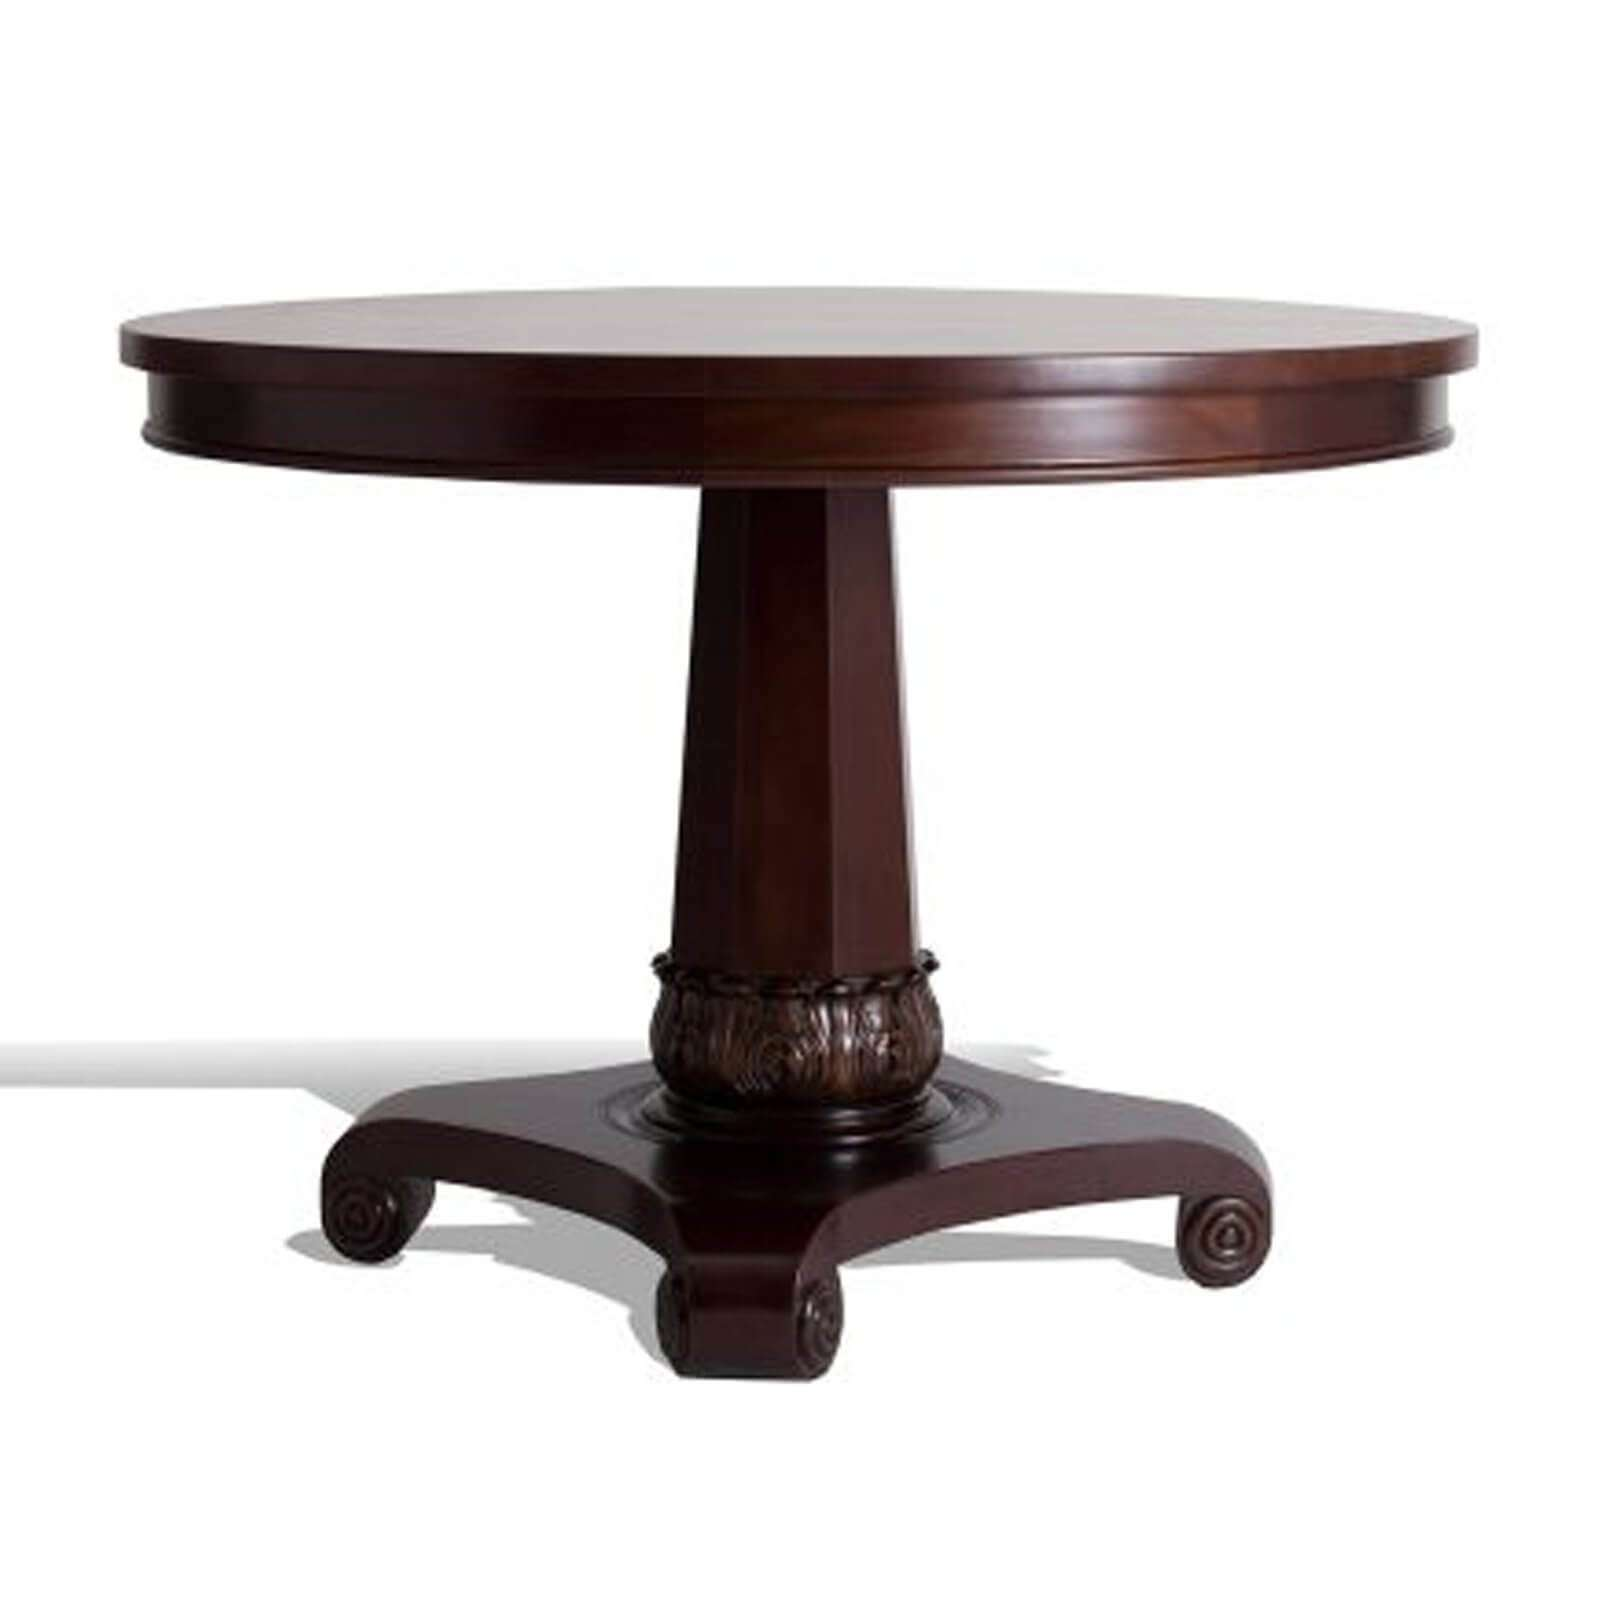 CAPE COLONY OCCASIONAL TABLE